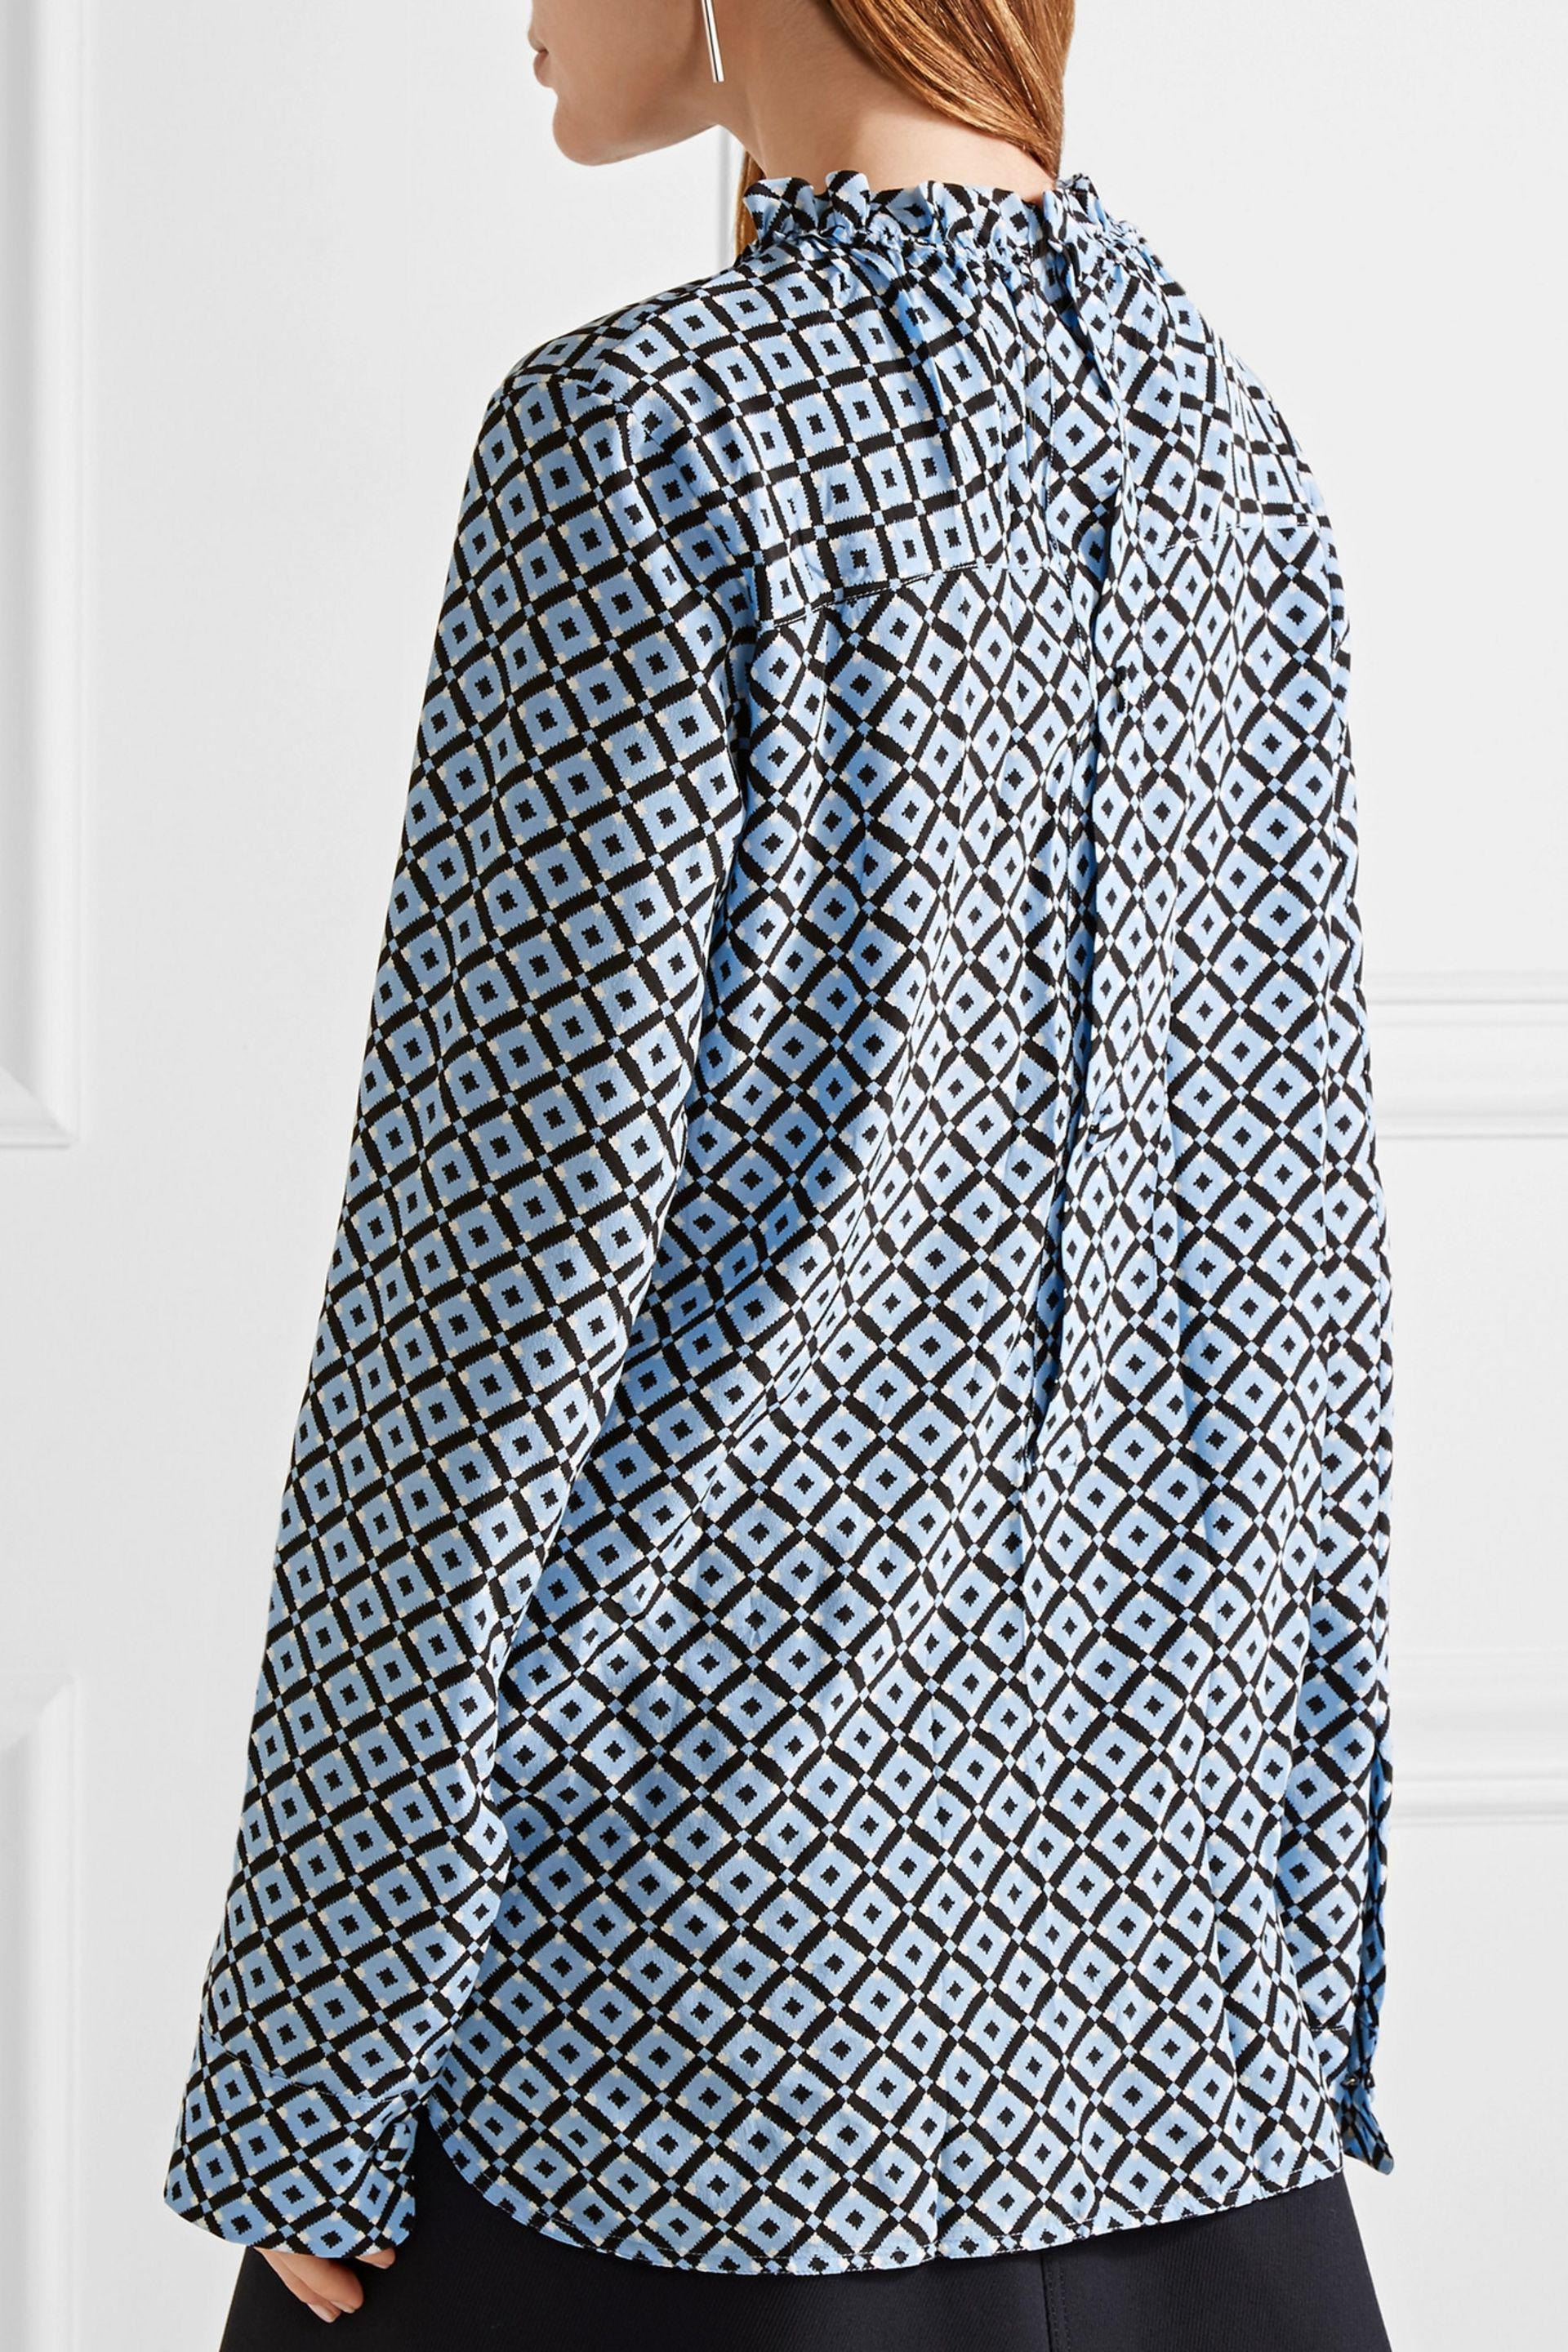 Marni Shirt In Silk Crepe Tracery Print in Blue